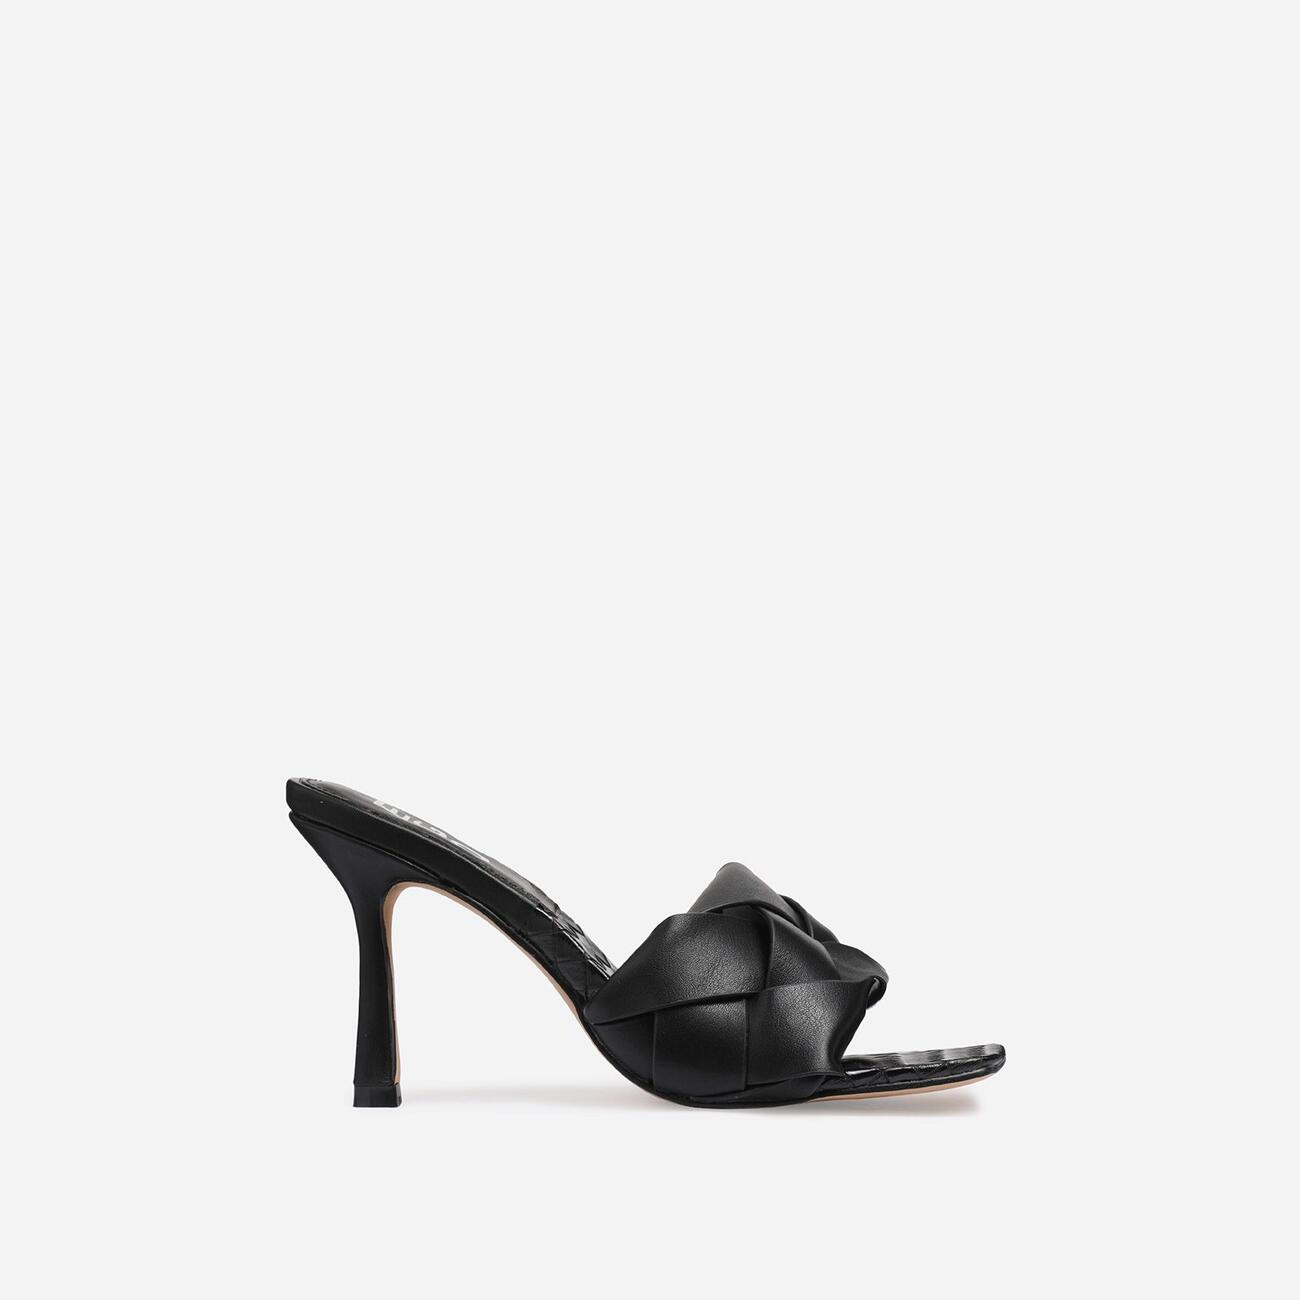 Turntup Woven Square Peep Toe Mule In Black Faux Leather Image 2